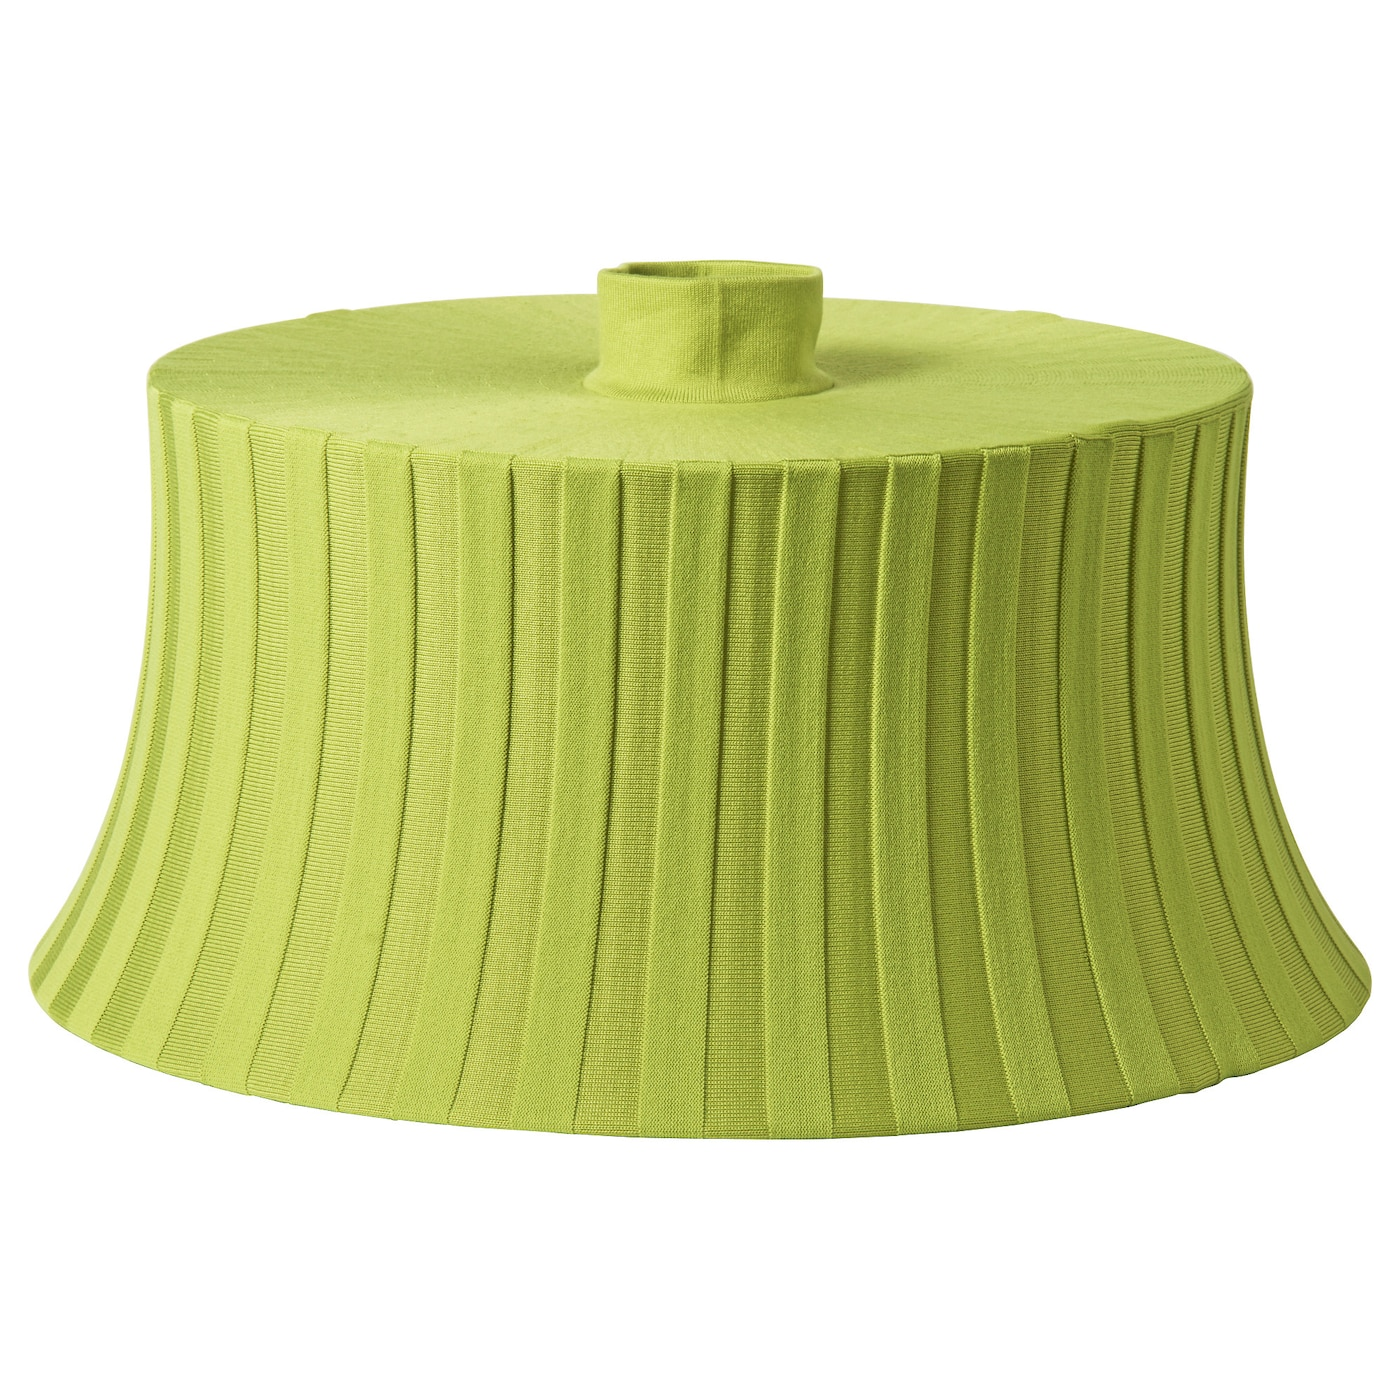 Mtevik lamp shade green 55 cm ikea ikea mtevik lamp shade the shade is easy to keep clean because the fabric is machine mozeypictures